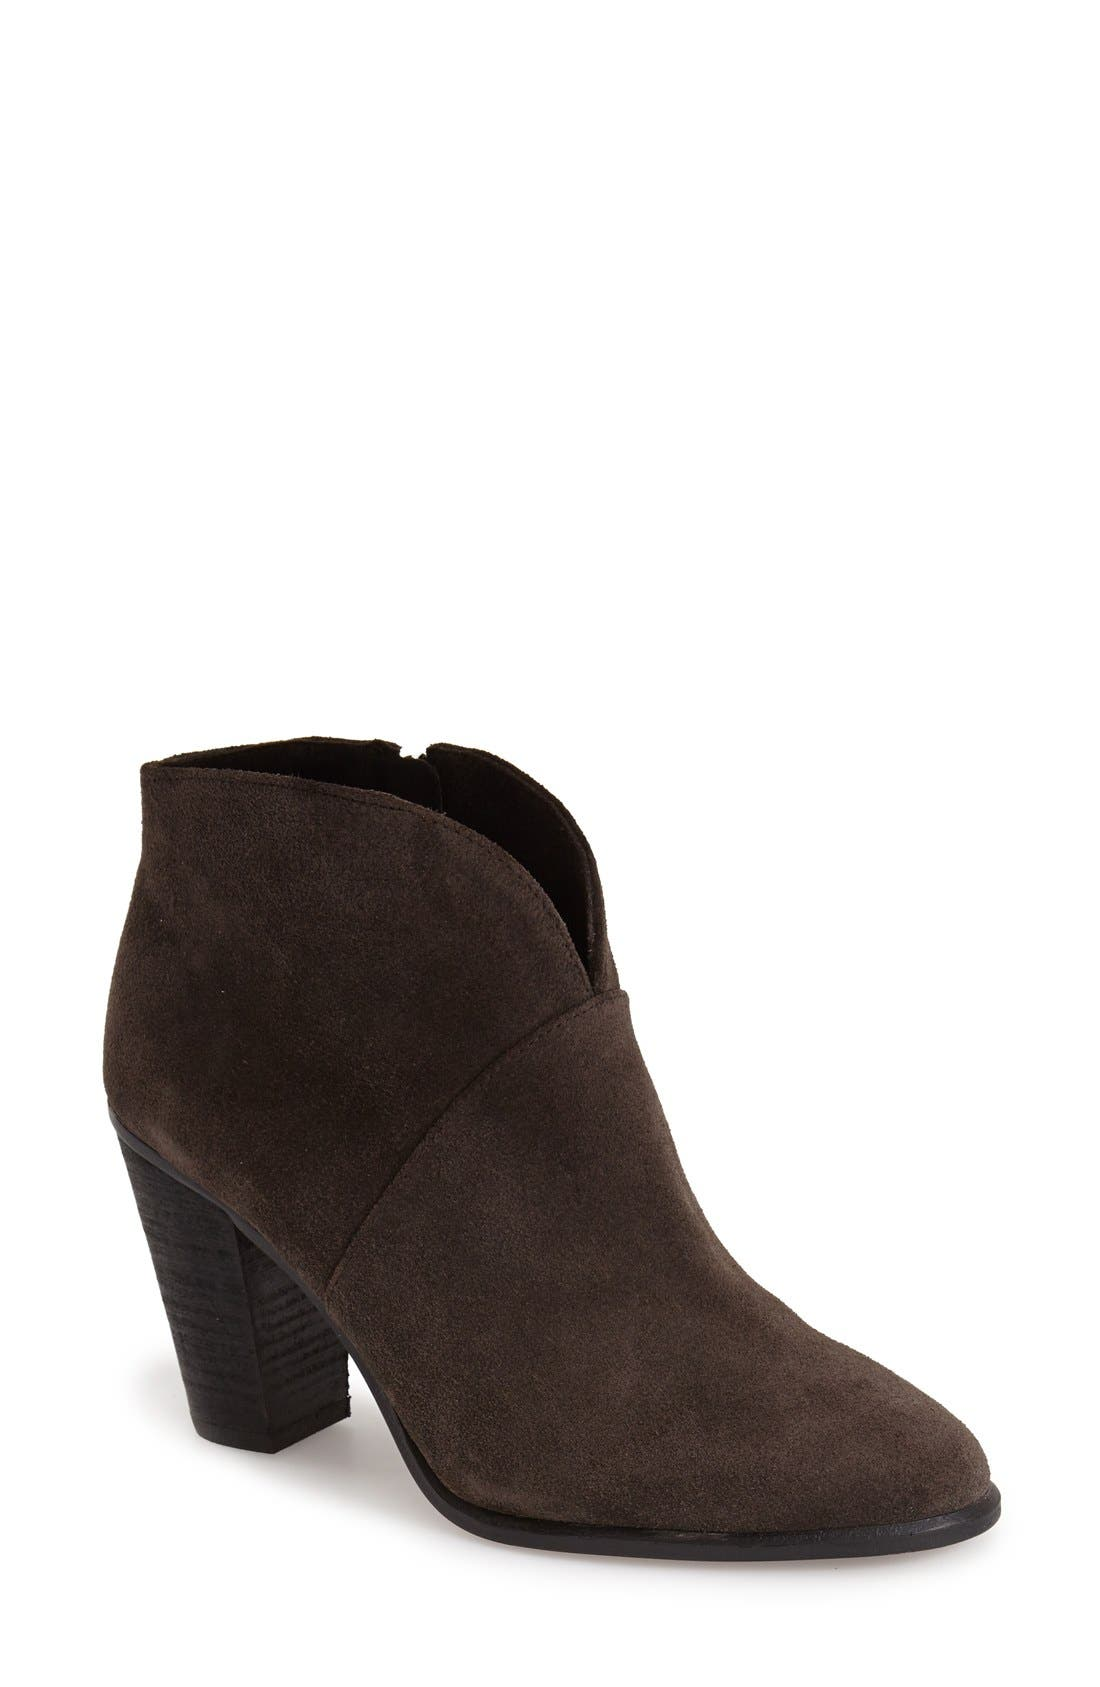 Alternate Image 1 Selected - Vince Camuto 'Franell' Western Bootie (Women)